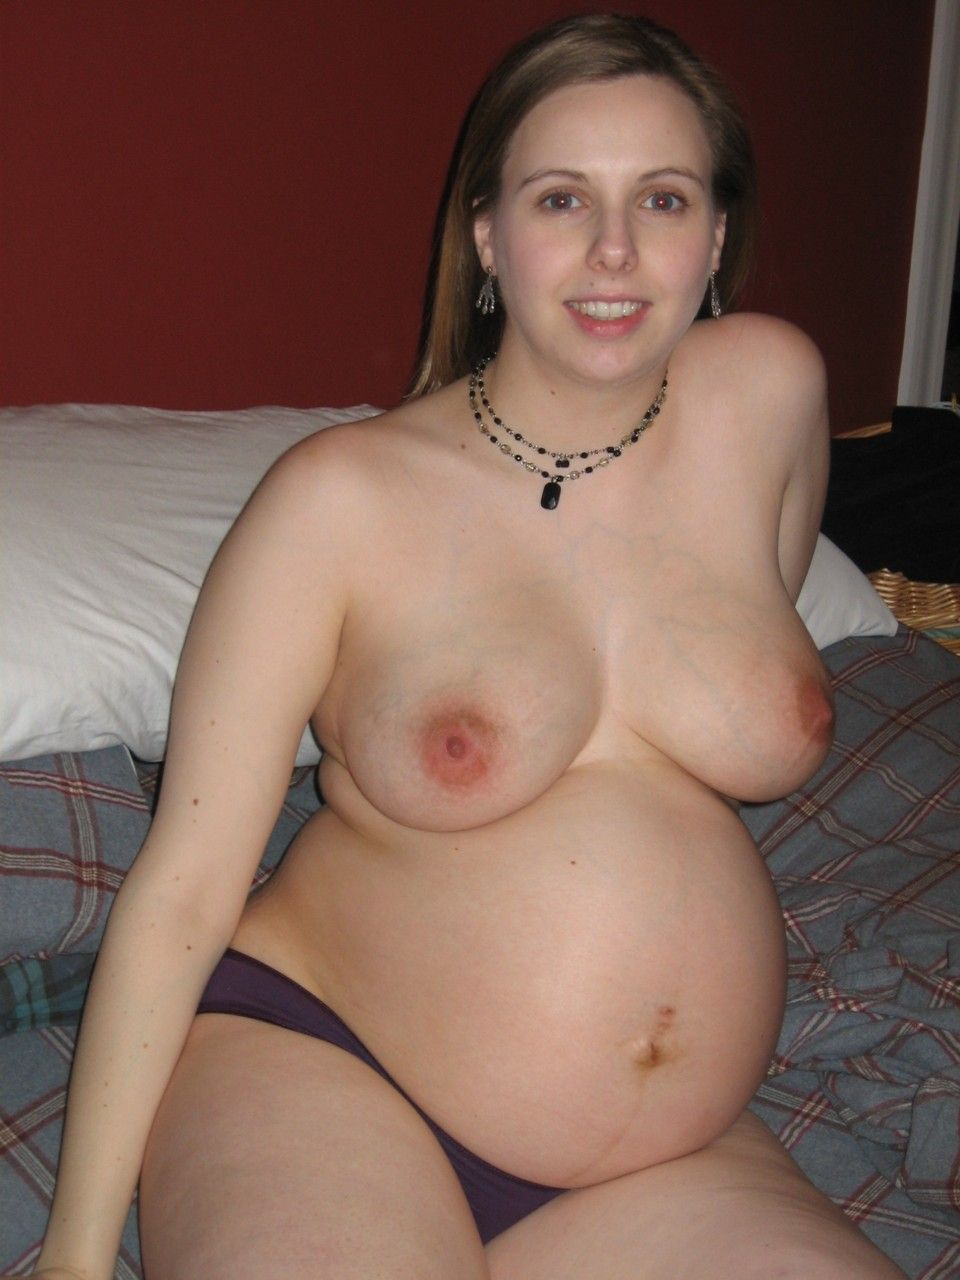 really hot pregnant girls naked